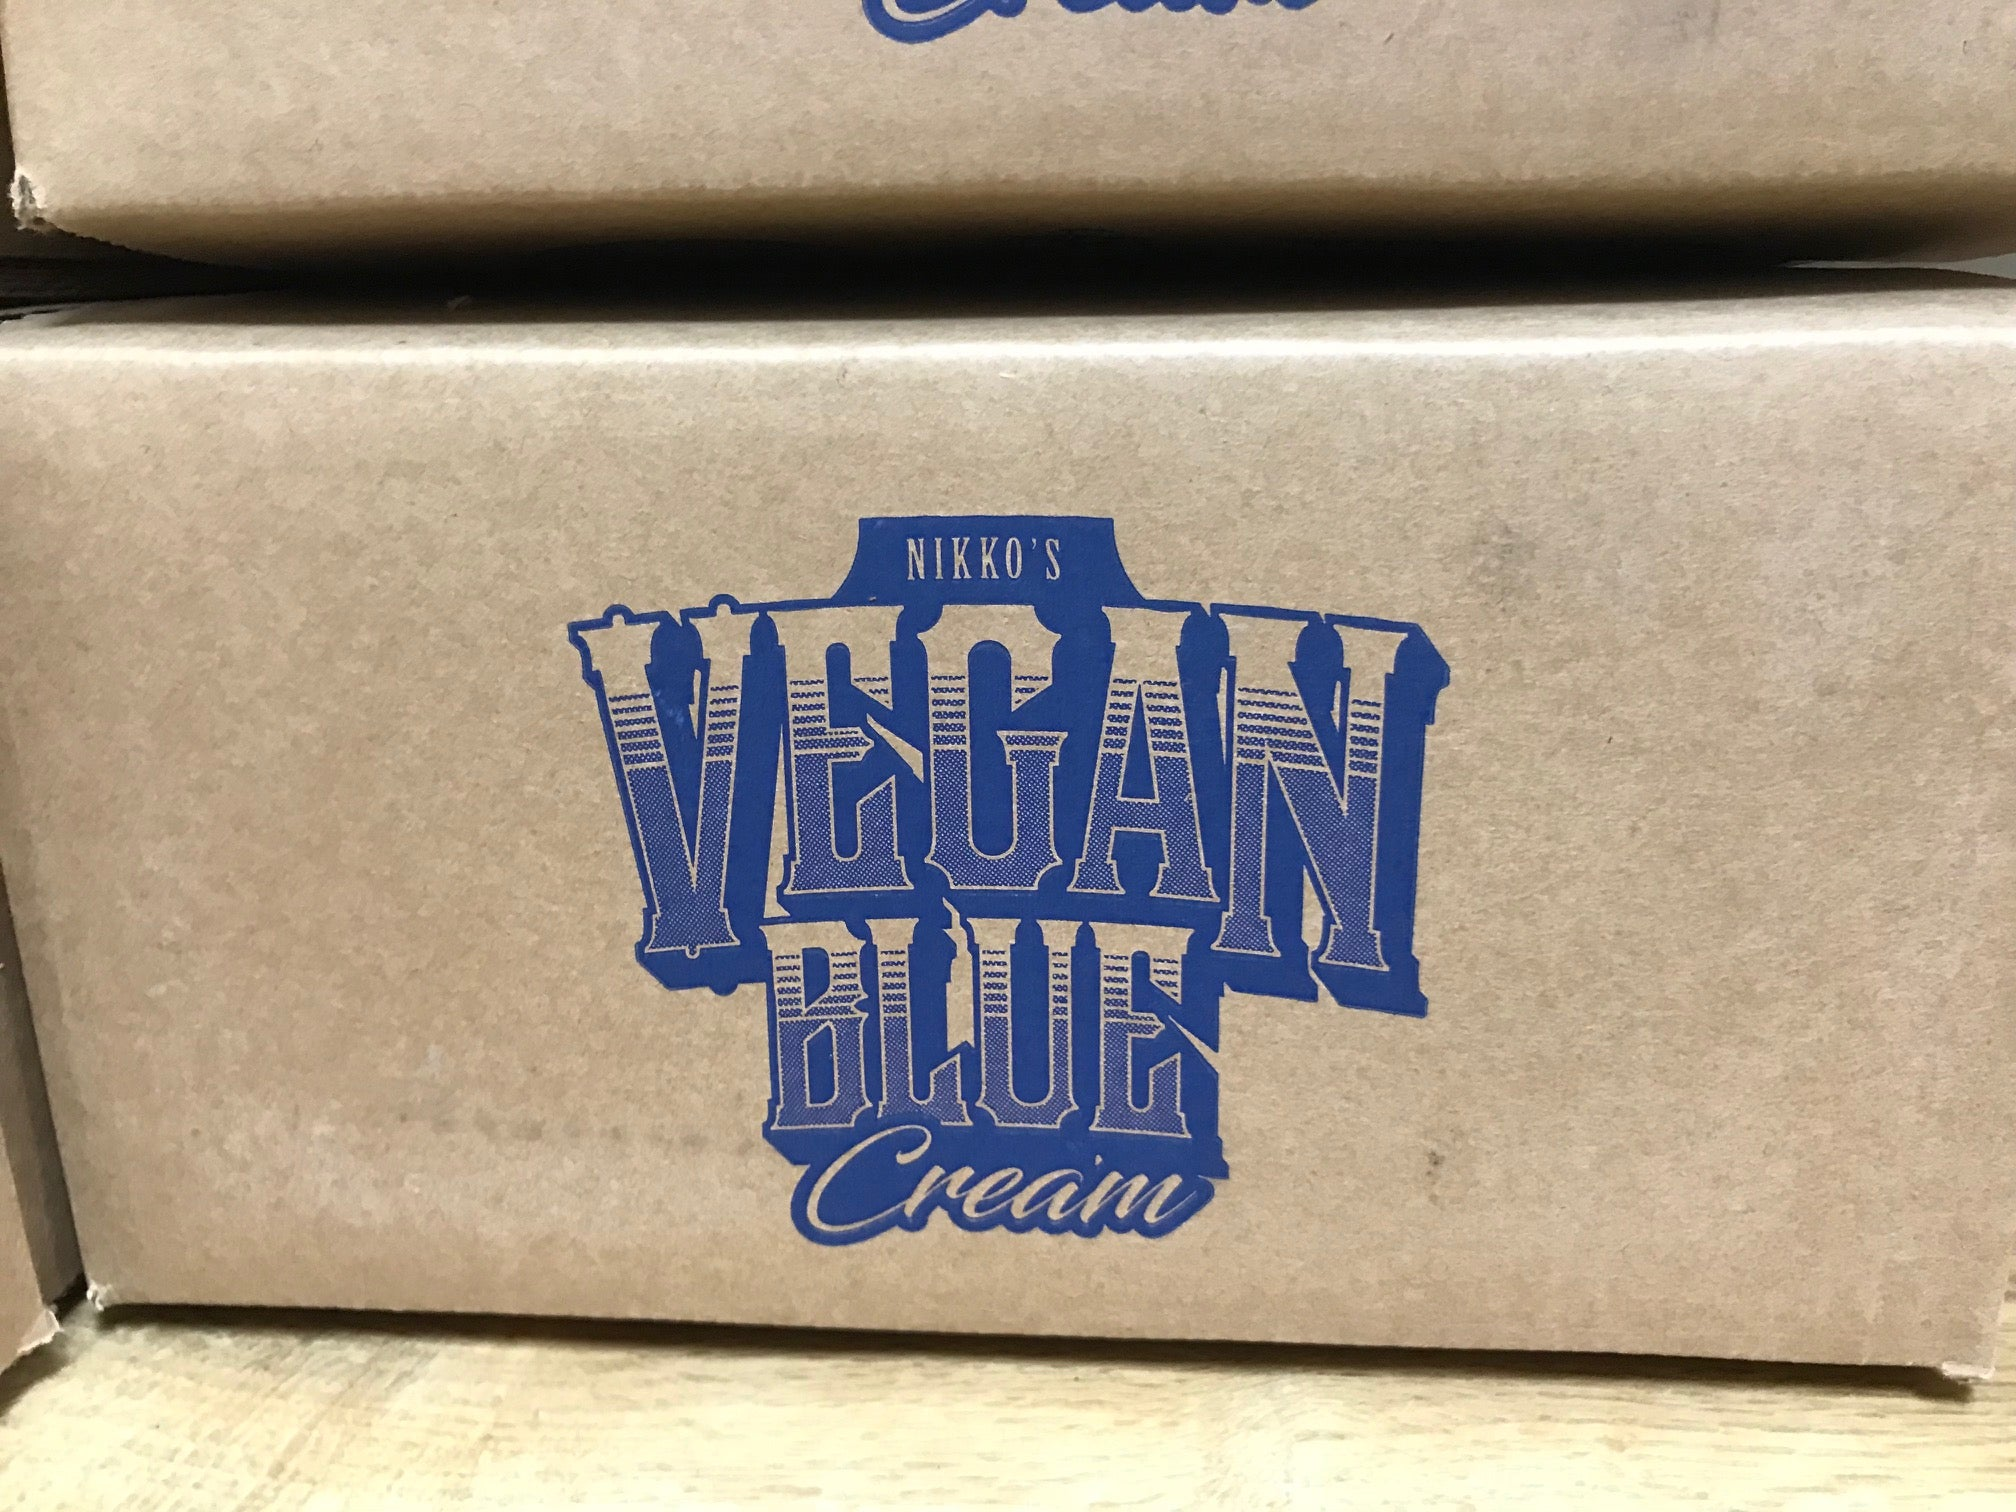 Vegan Blue Tattoo Cream (Case of 24)